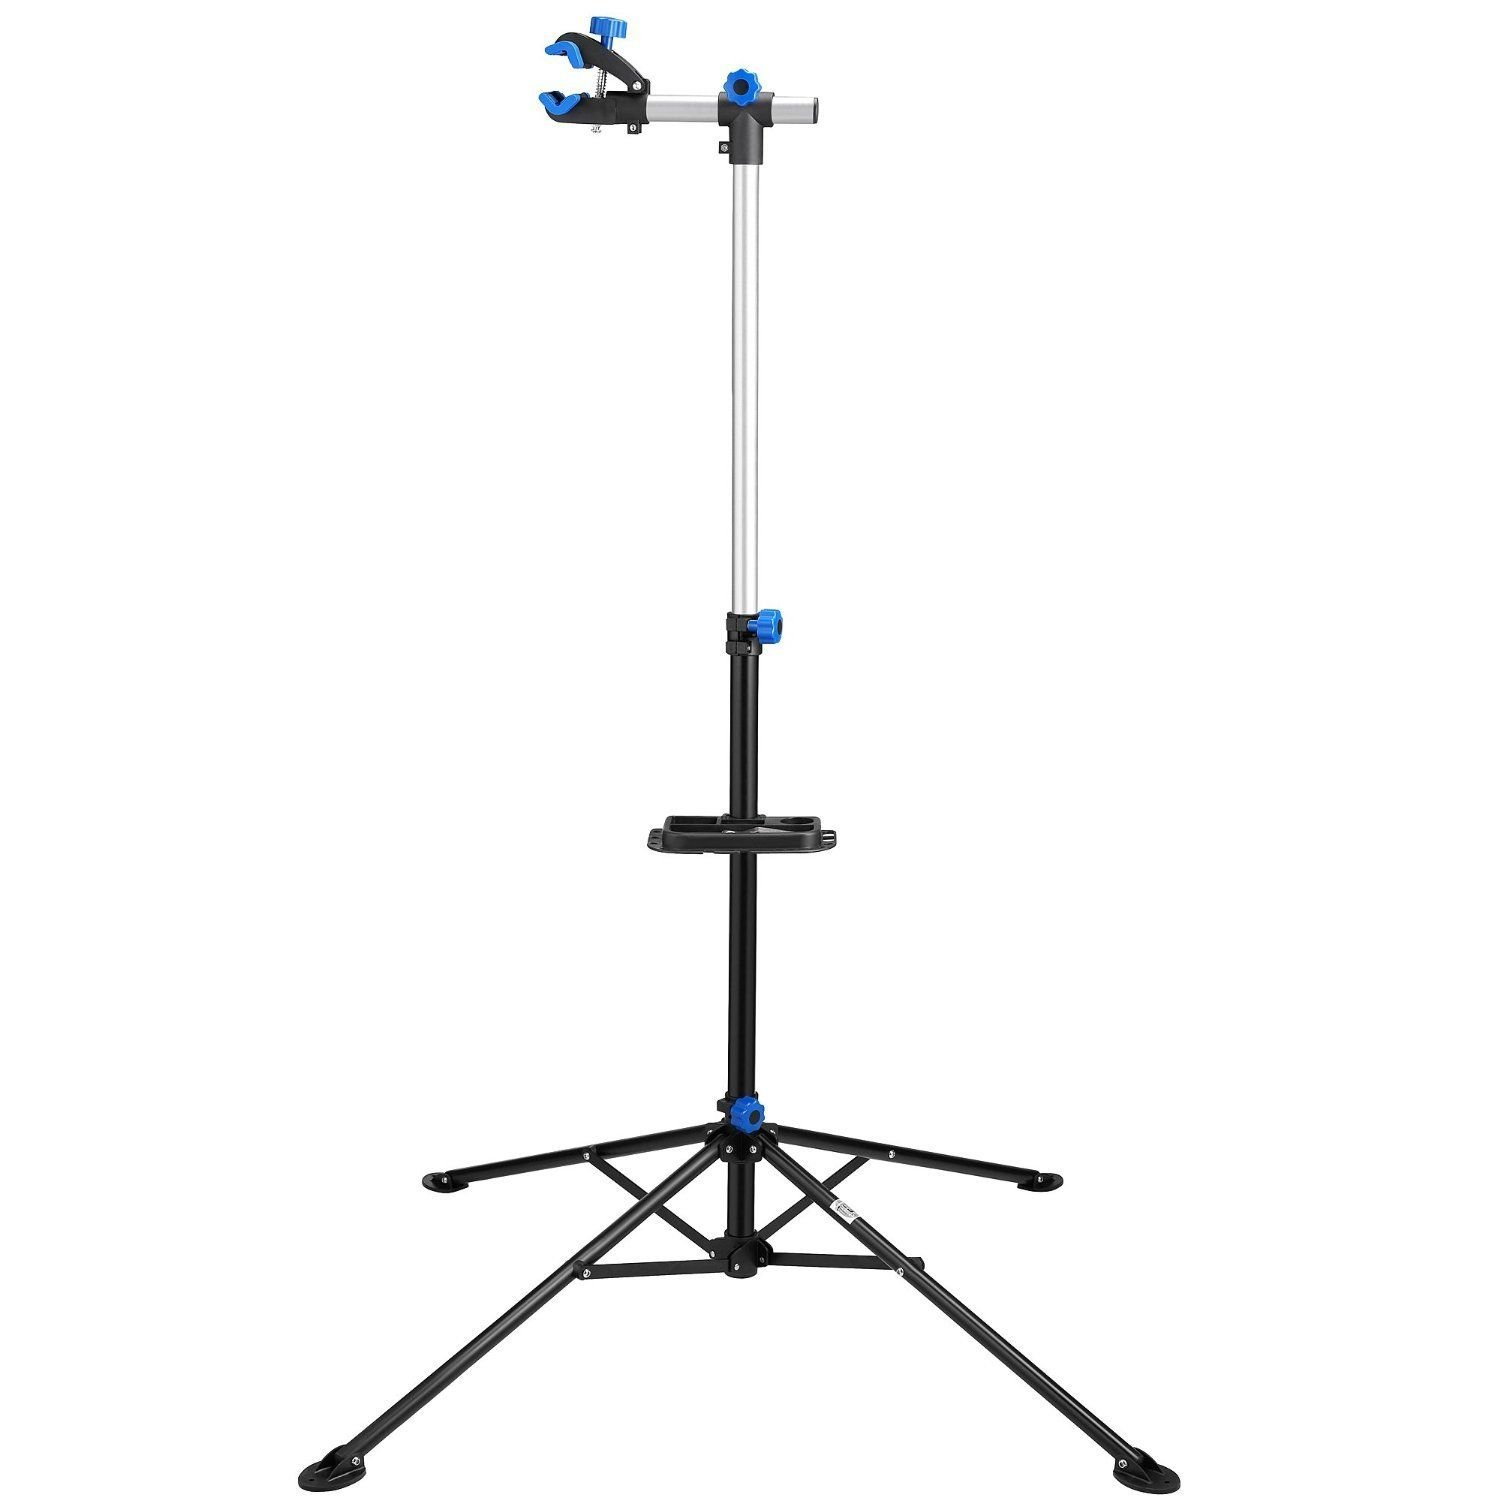 Products 2008-PRO-STAND Pro Bicycle Adjustable Repair Stand by Alitop (Image #4)